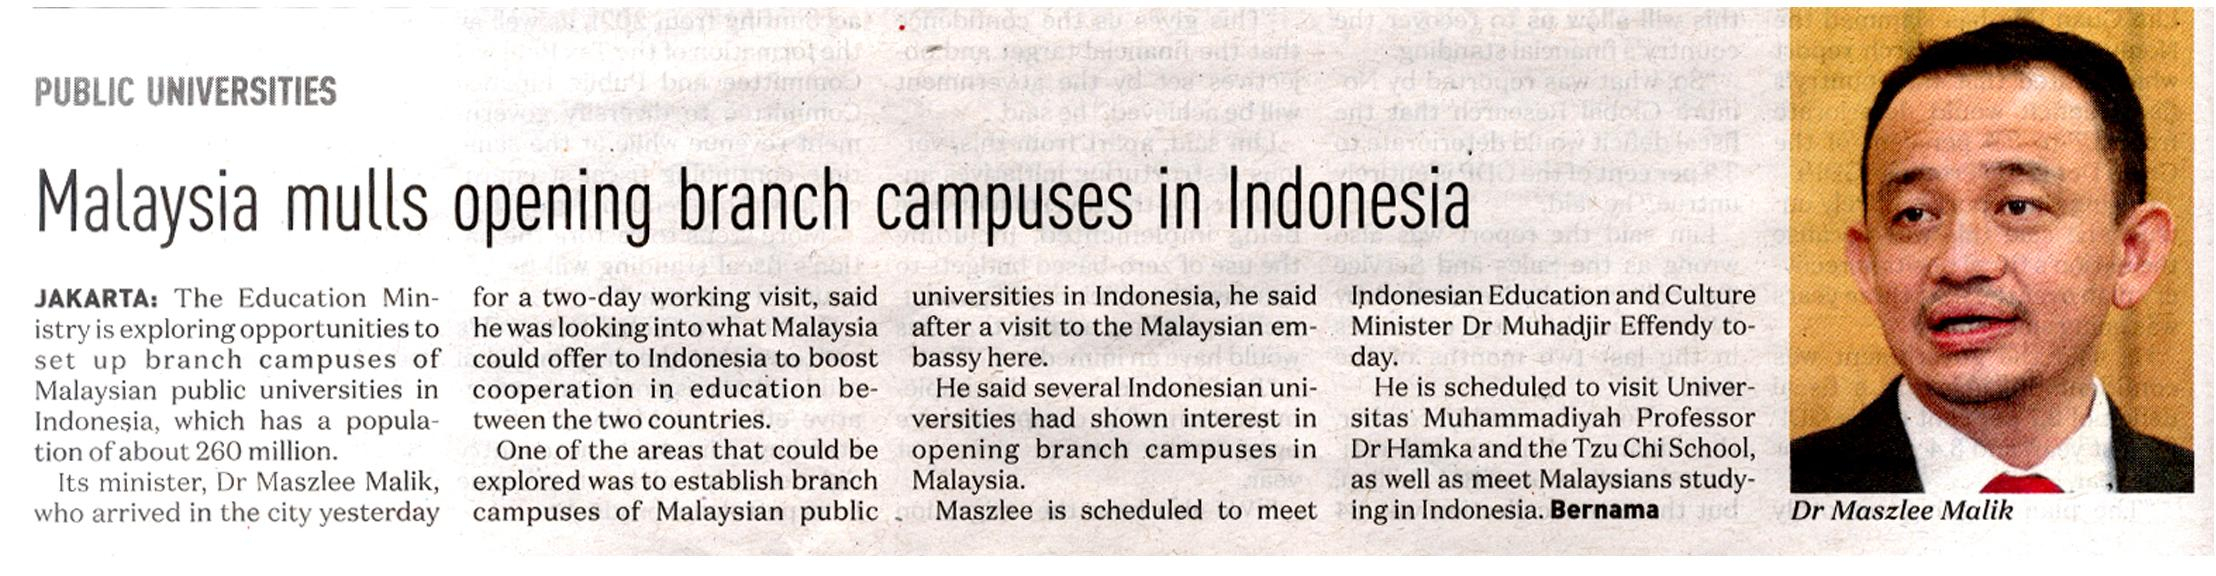 NST Malaysia mulls opening branch campuses in Indonesia